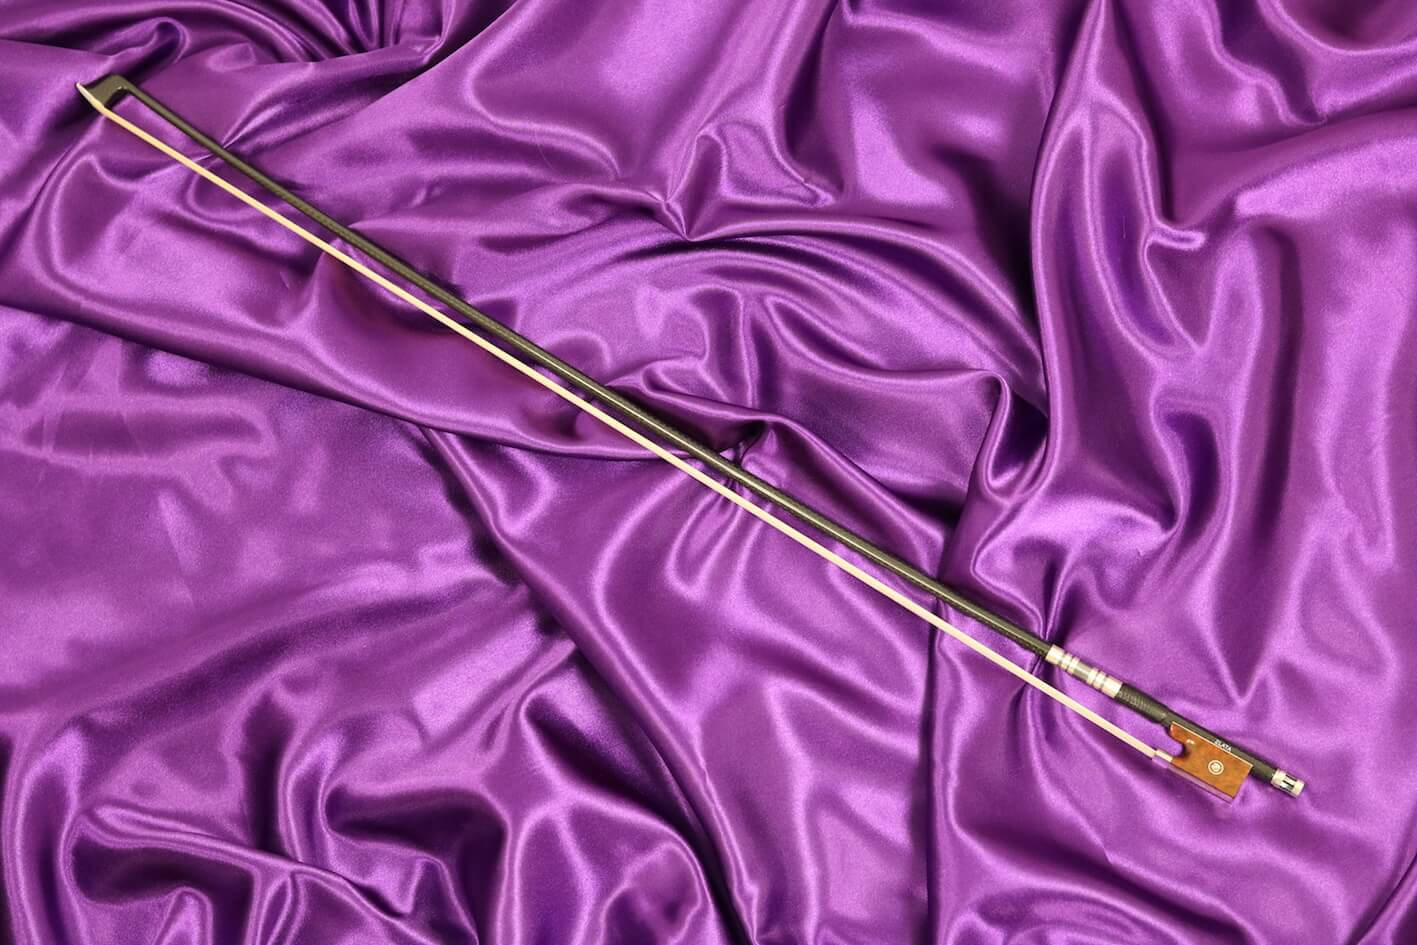 Zlata carbon violin bow 1